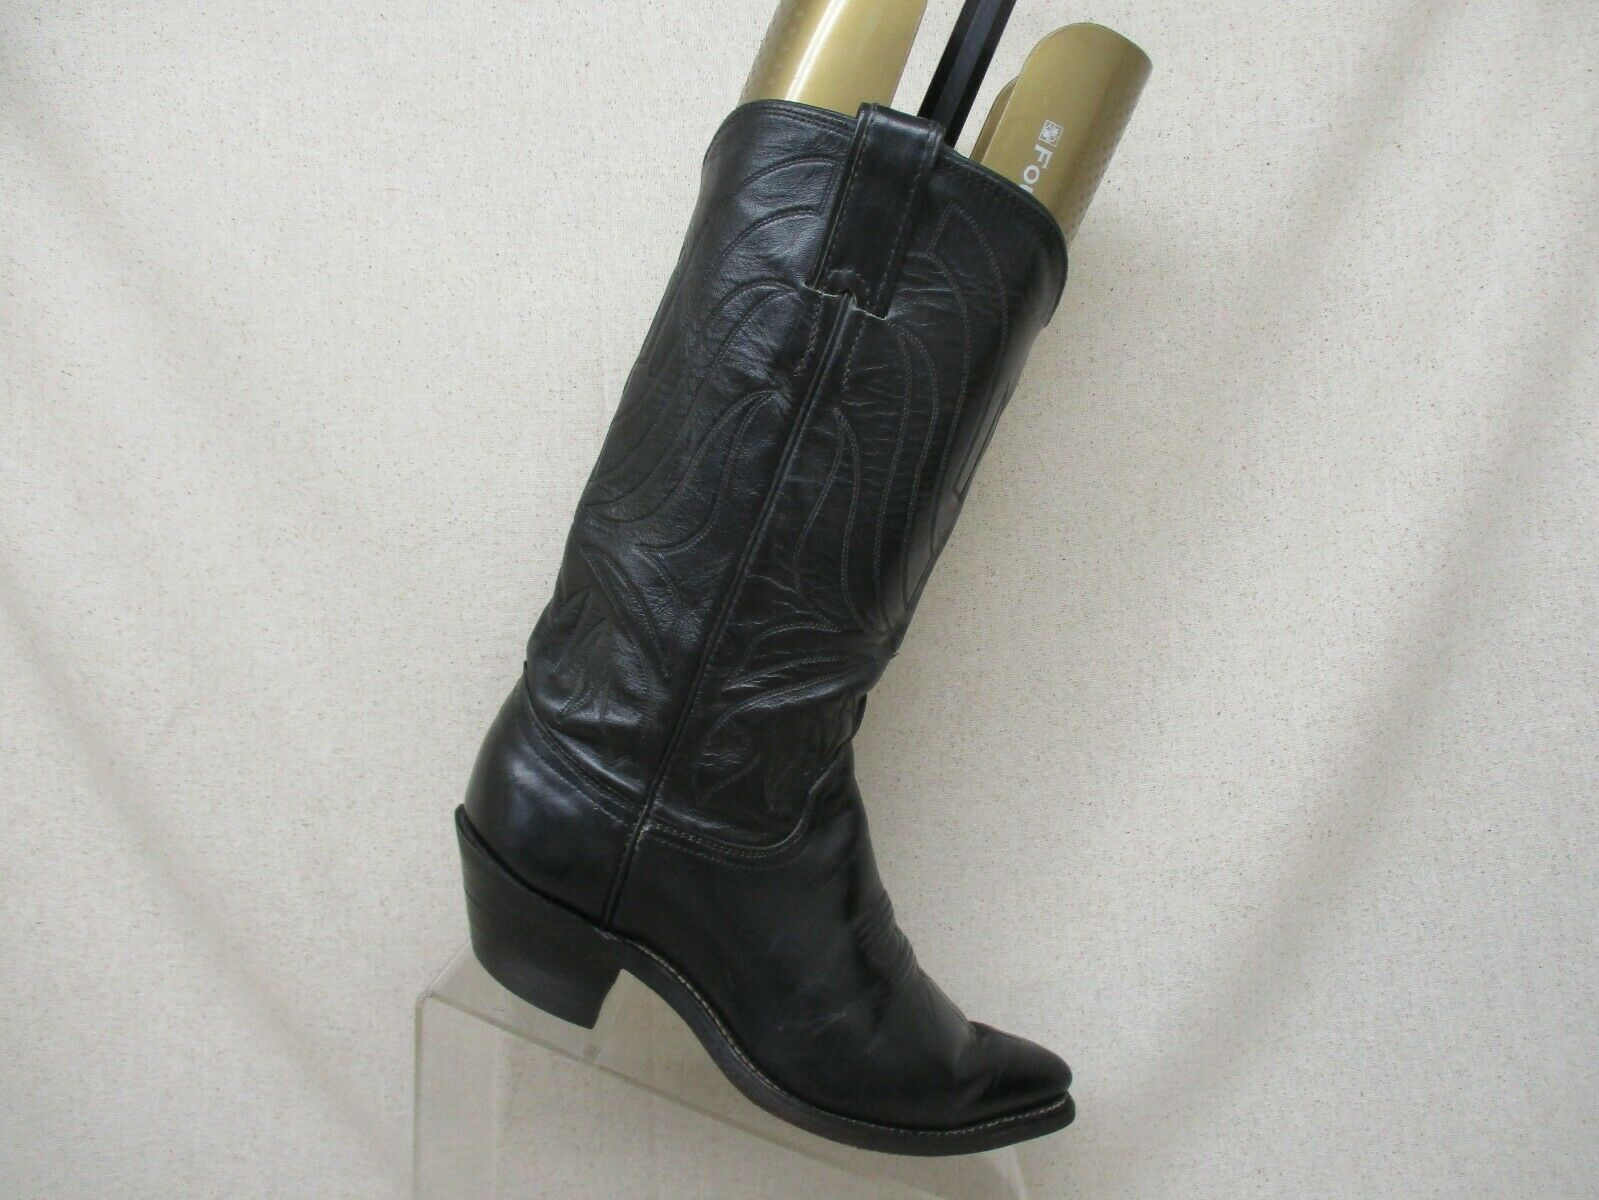 Justin Black All Leather Cowboy Western Boots Womens Size 6.5B Style T4774